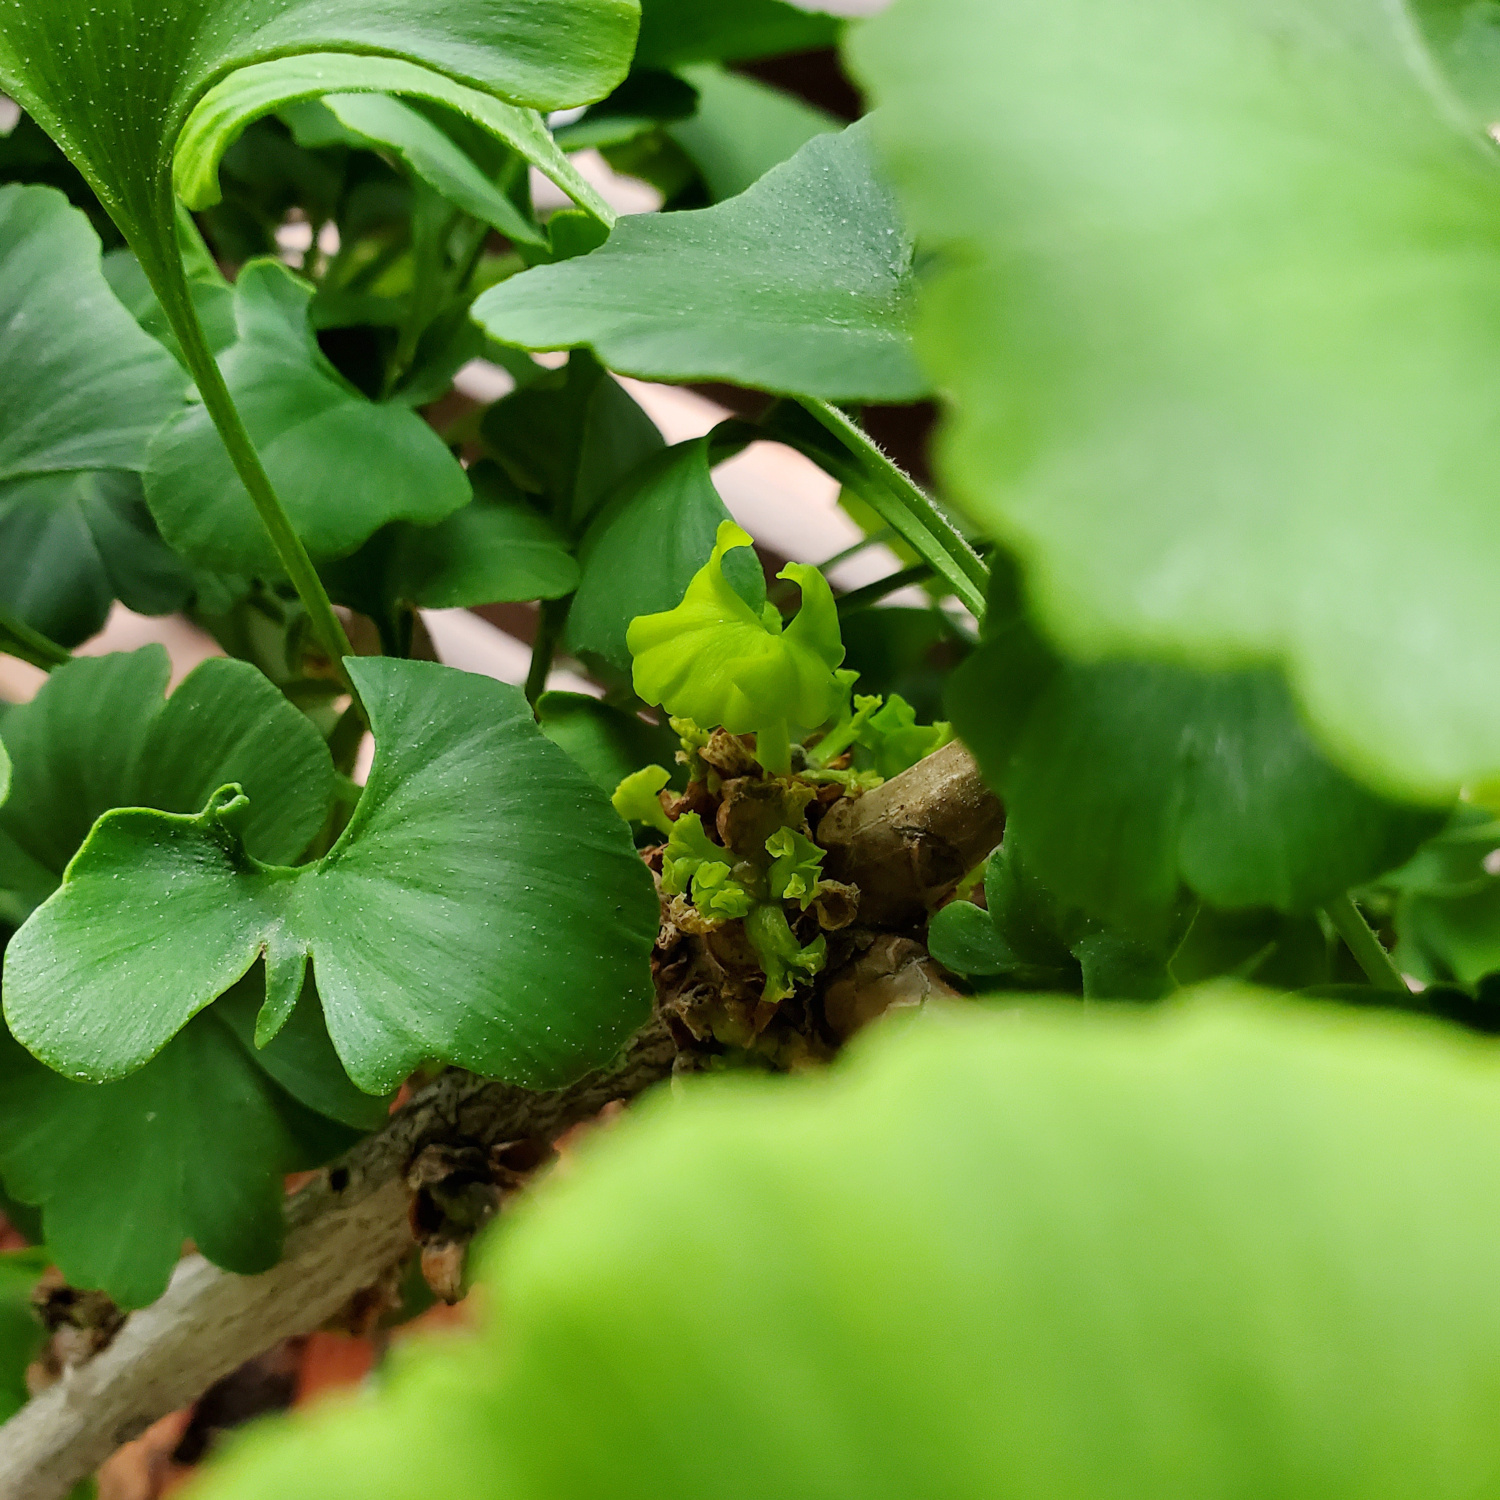 The ginkgo is putting out some new baby leaves deep under the older ones